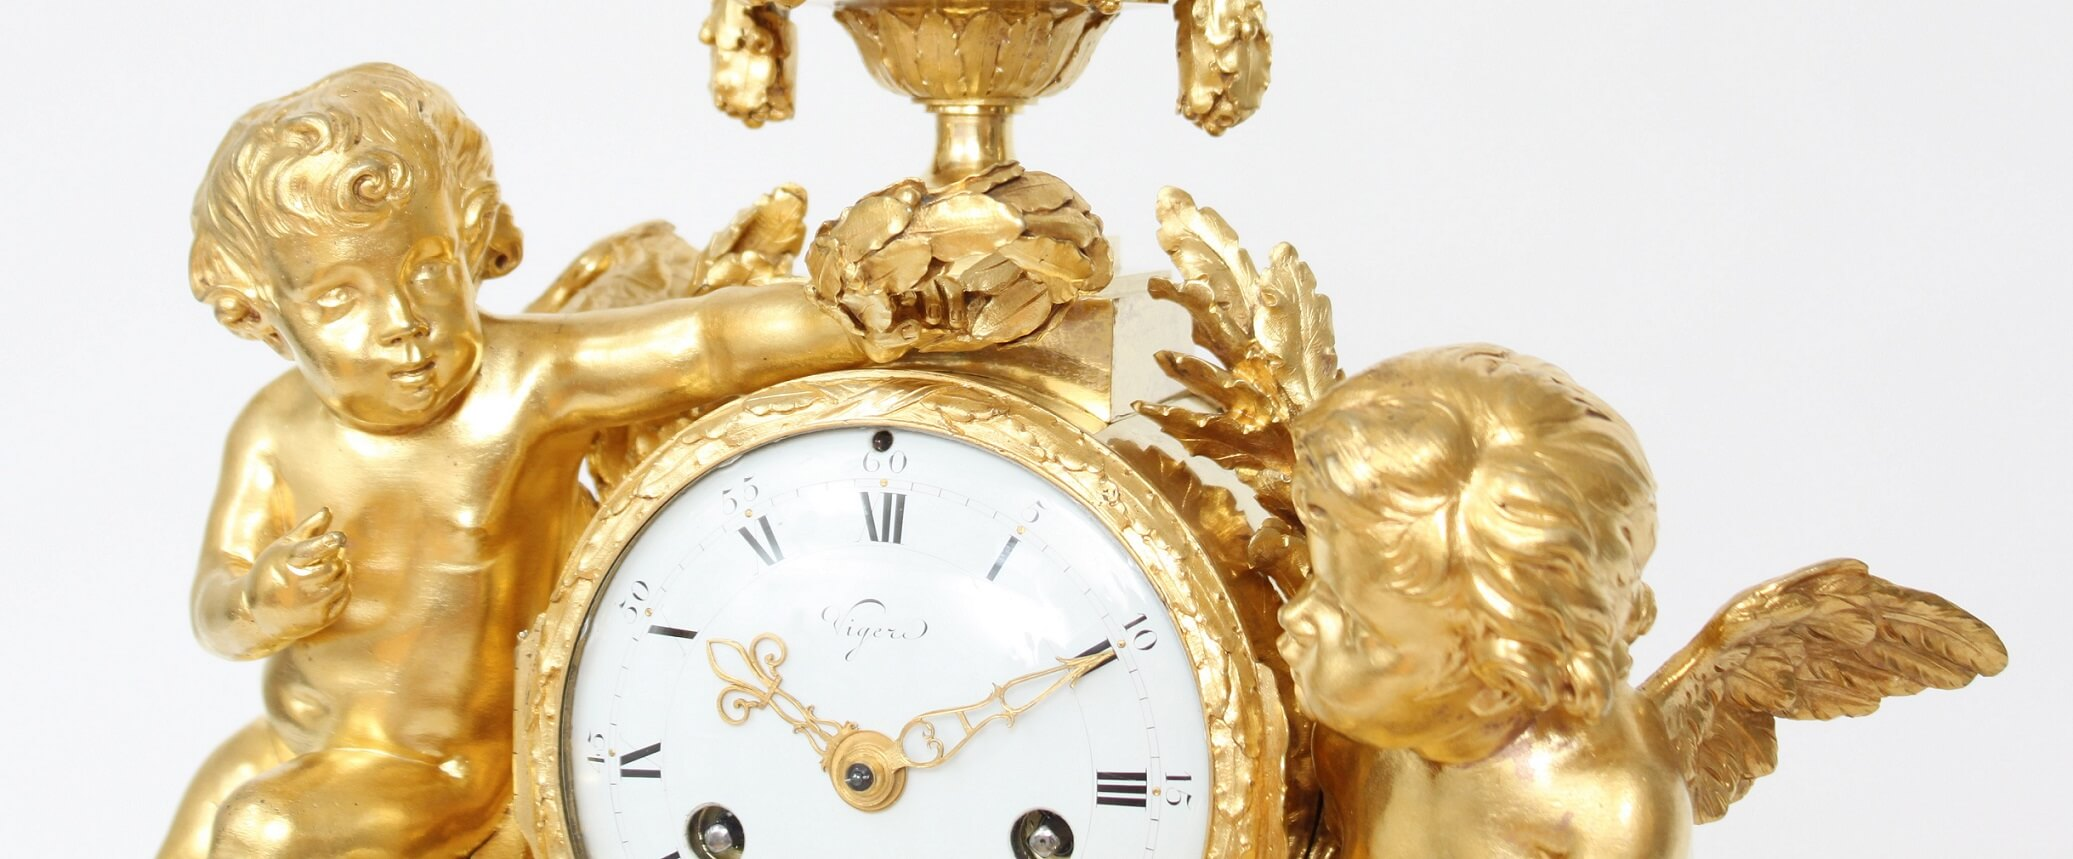 French-Louis XVI-ormolu-bronze-sculptural-antique-mantel-clock-Viger-Osmond